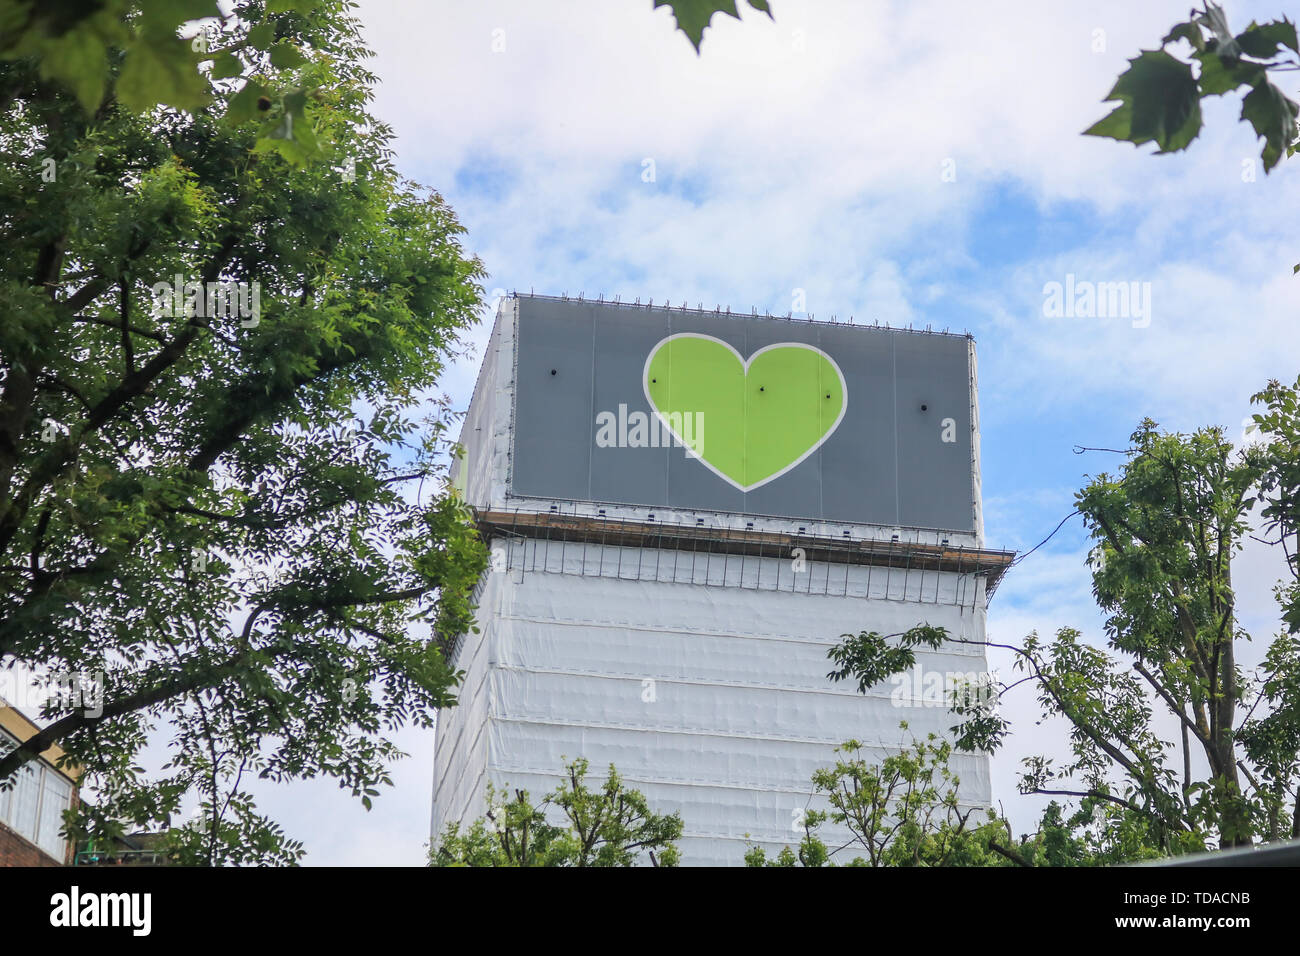 London, UK. 13th June, 2019. Grenfell tower covered in white tarpaulin on the second anniversary of the devastating inferno fire which in the residential tower block in West London on 14 June 2019 Credit: amer ghazzal/Alamy Live News - Stock Image